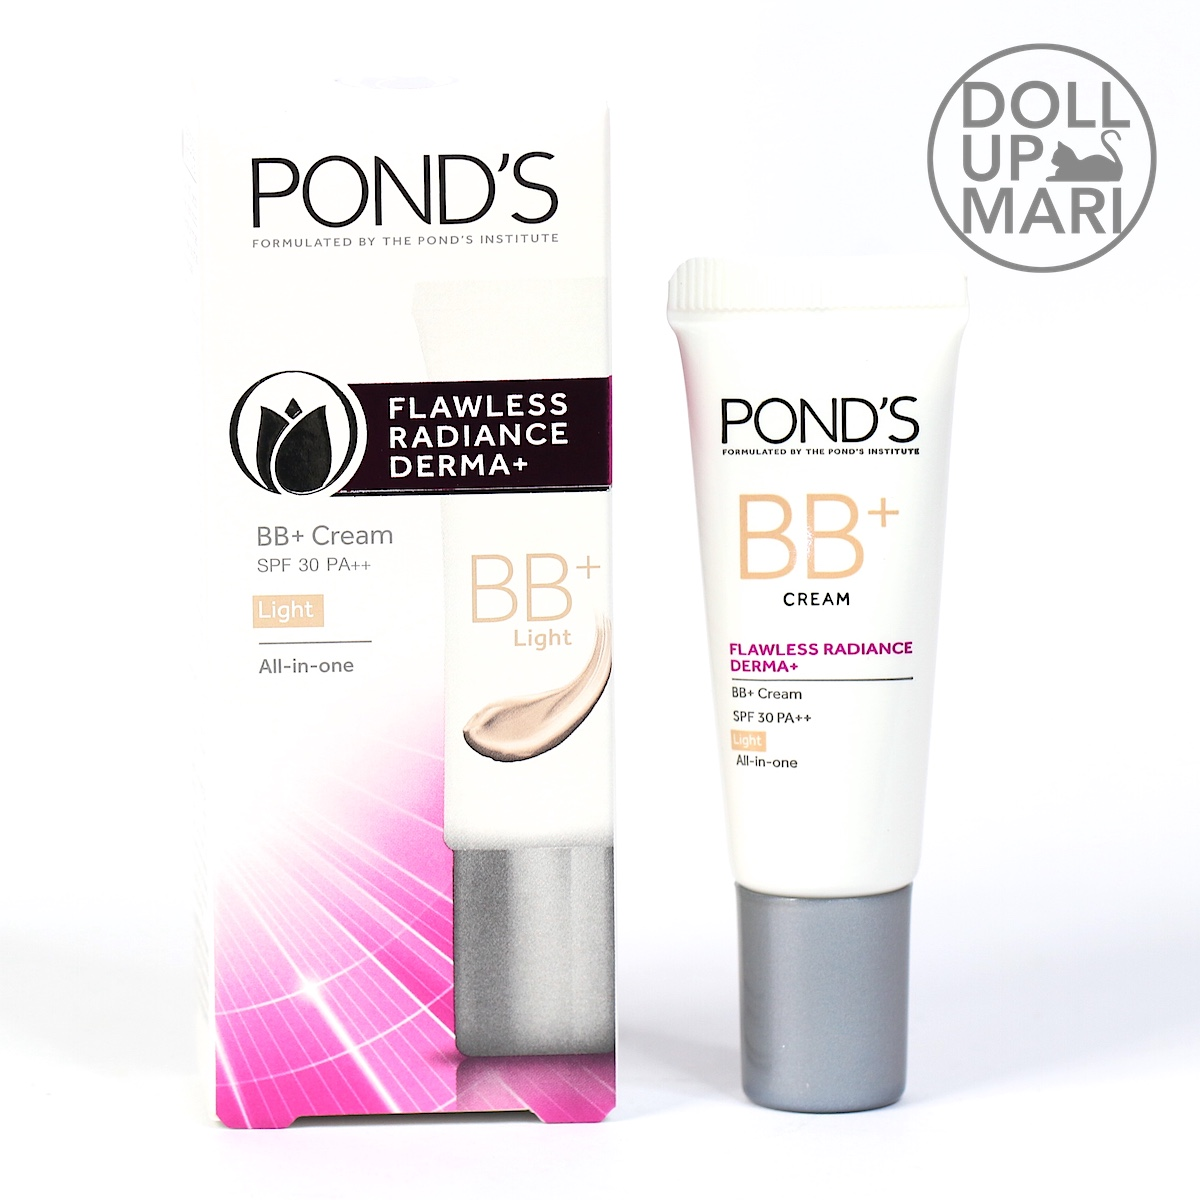 Ponds Flawless Radiance Derma Now At Sample Room Doll Up Mari Daily Moist 50g Bb Cream